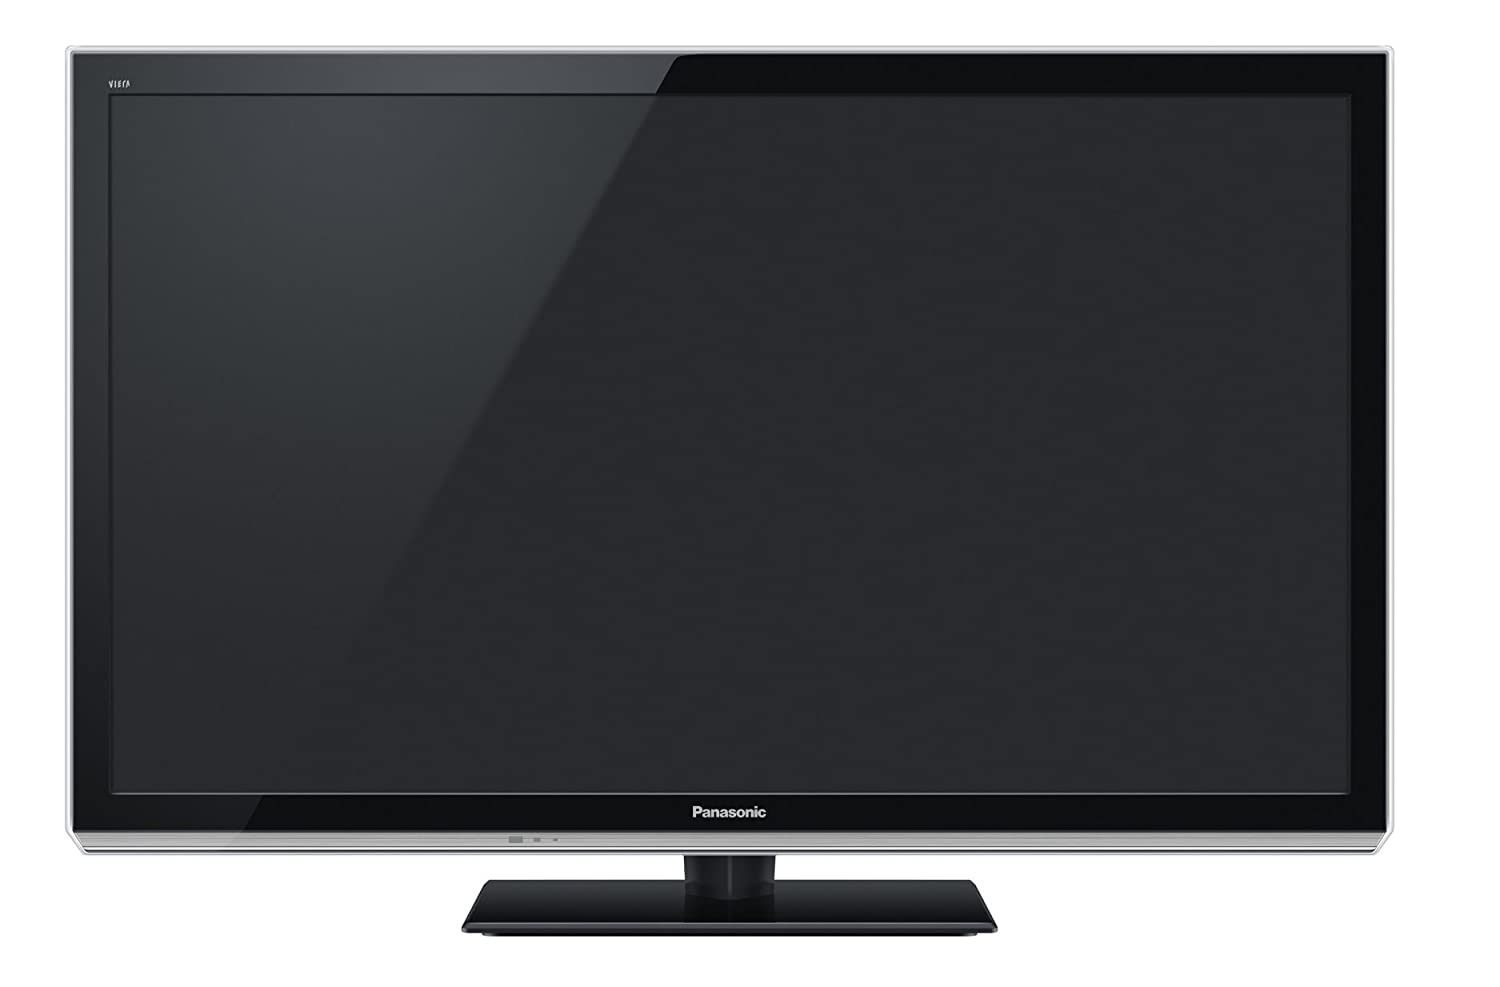 Panasonic Viera TH-P42UT50D TV Drivers for Windows 10